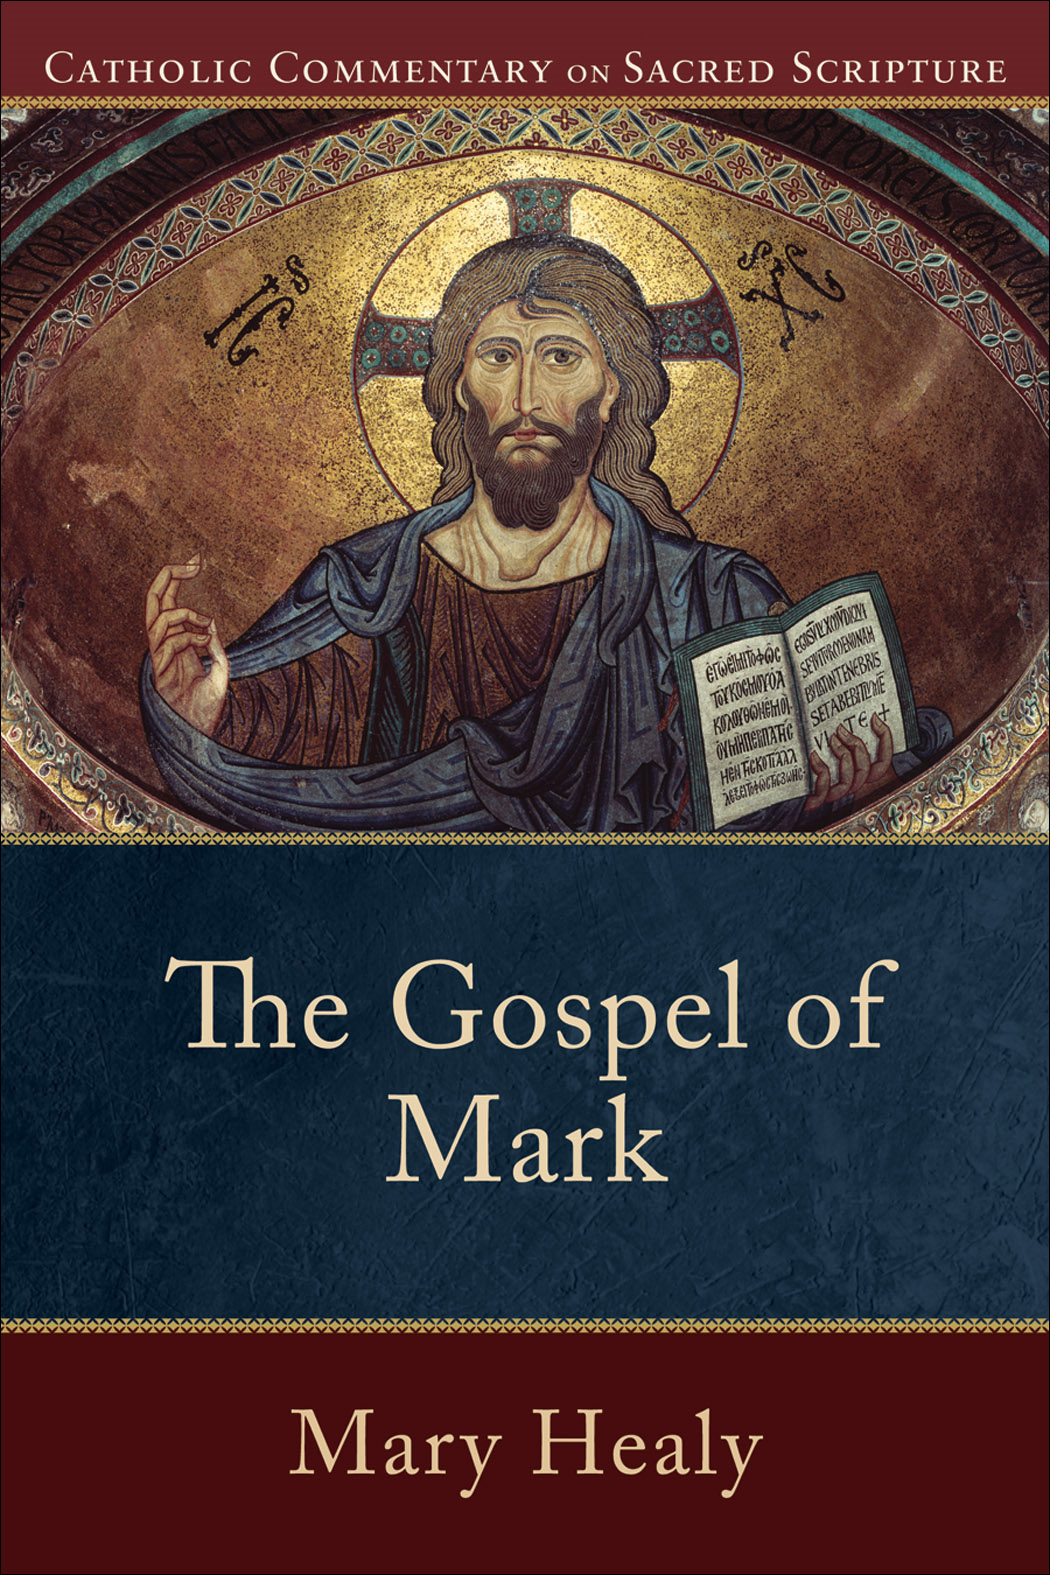 Gospel of Mark, The (Catholic Commentary on Sacred Scripture) By: Mary Healy